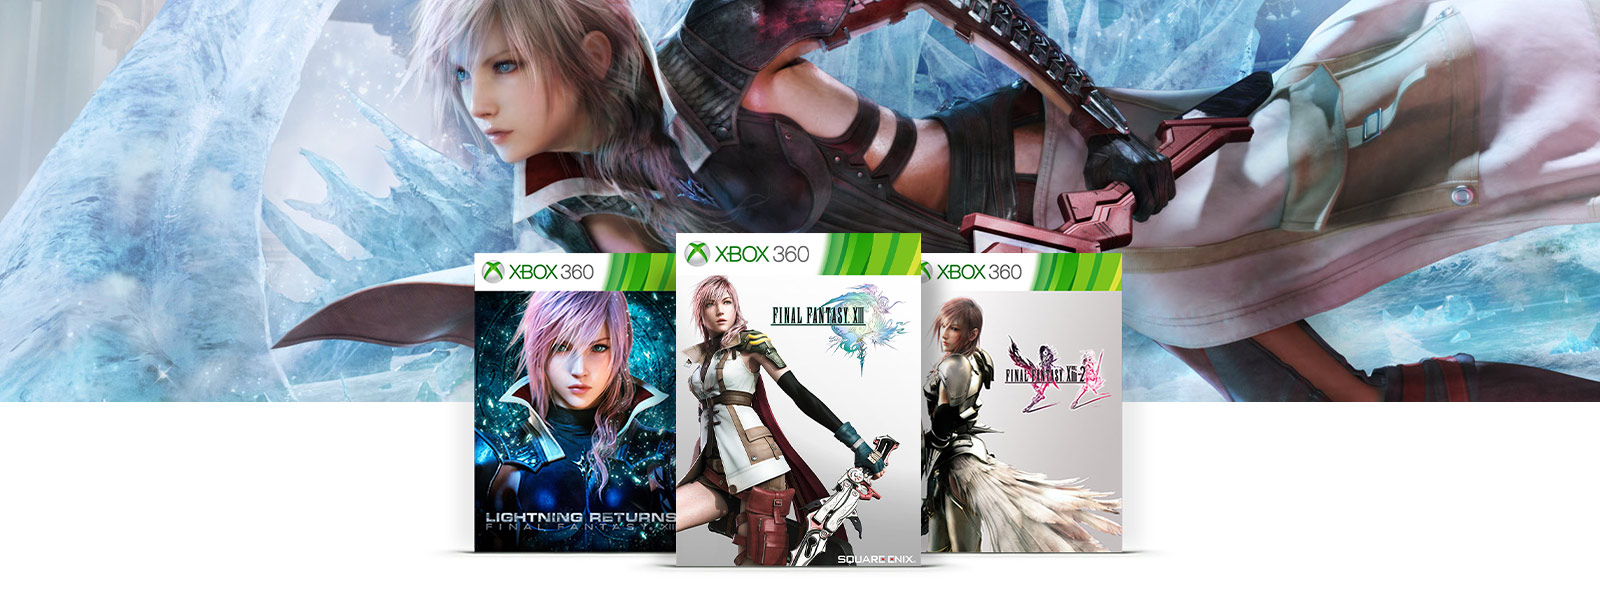 Coverbilder fra FINAL FANTASY XIII, FINAL FANTASY XIII-2 og LIGHTNING RETURNS FINAL FANTASY vises over karakteren Lightning